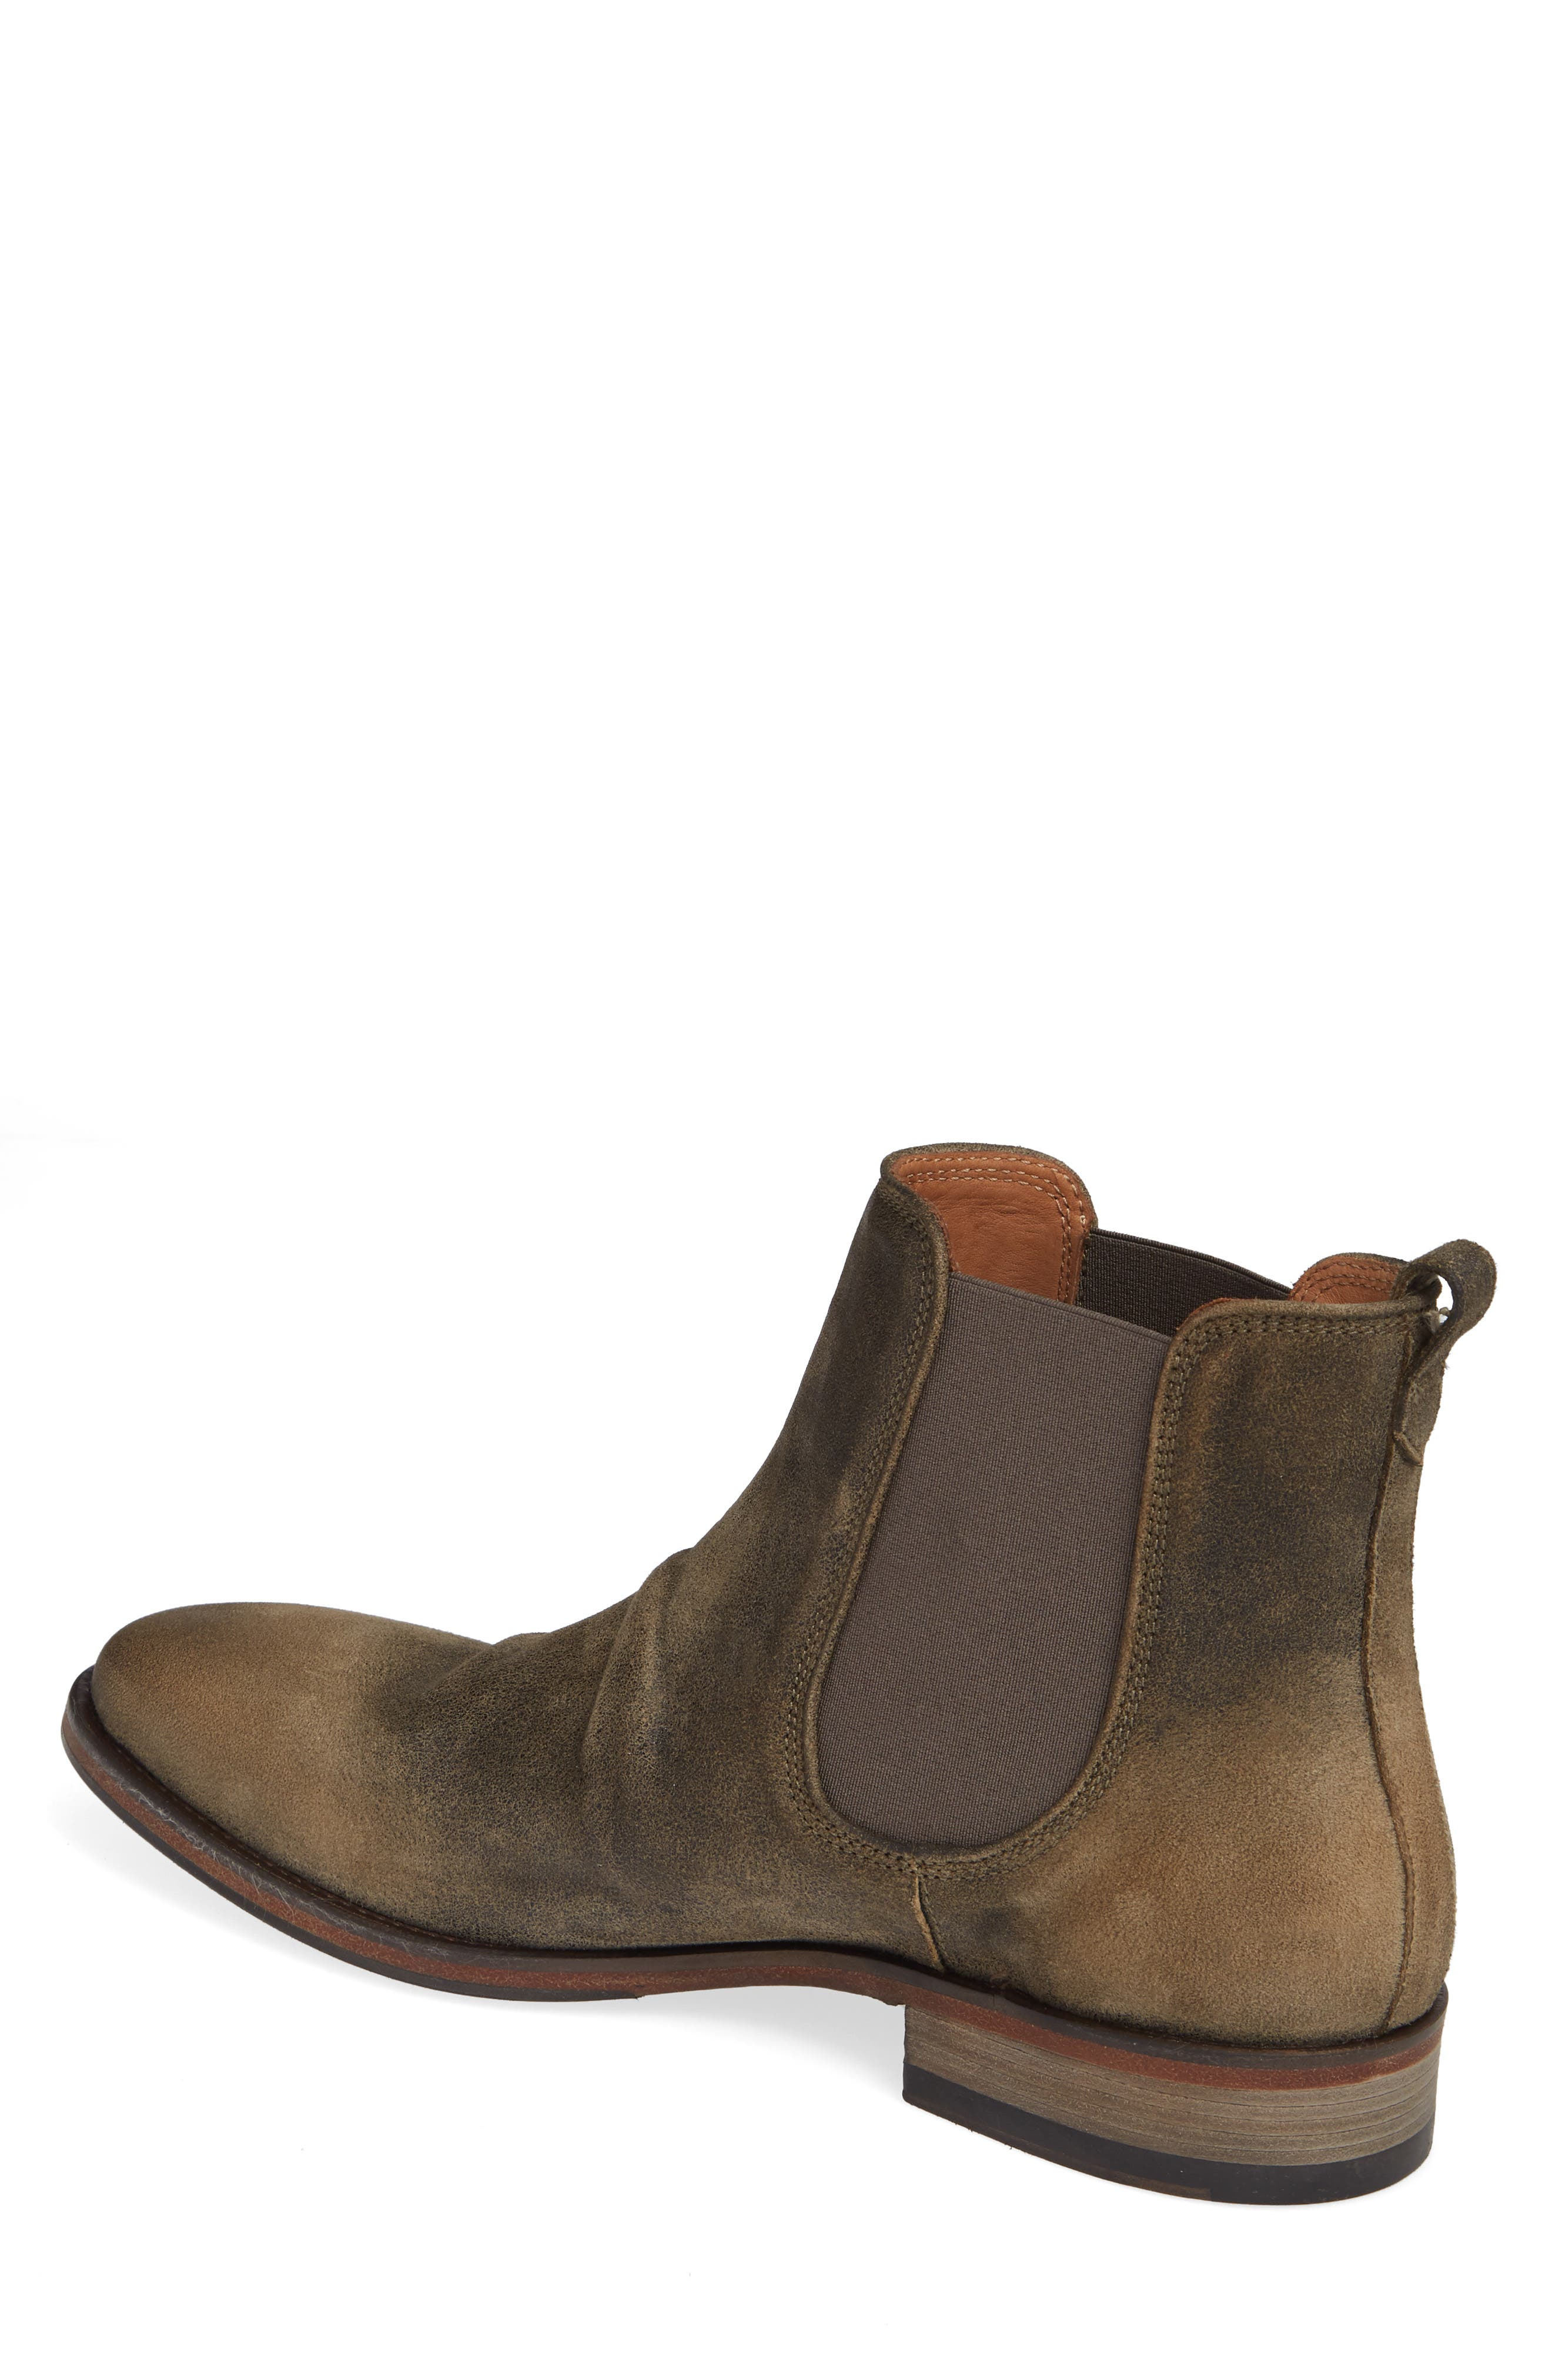 JOHN VARVATOS COLLECTION, Fleetwood Chelsea Boot, Alternate thumbnail 2, color, 237